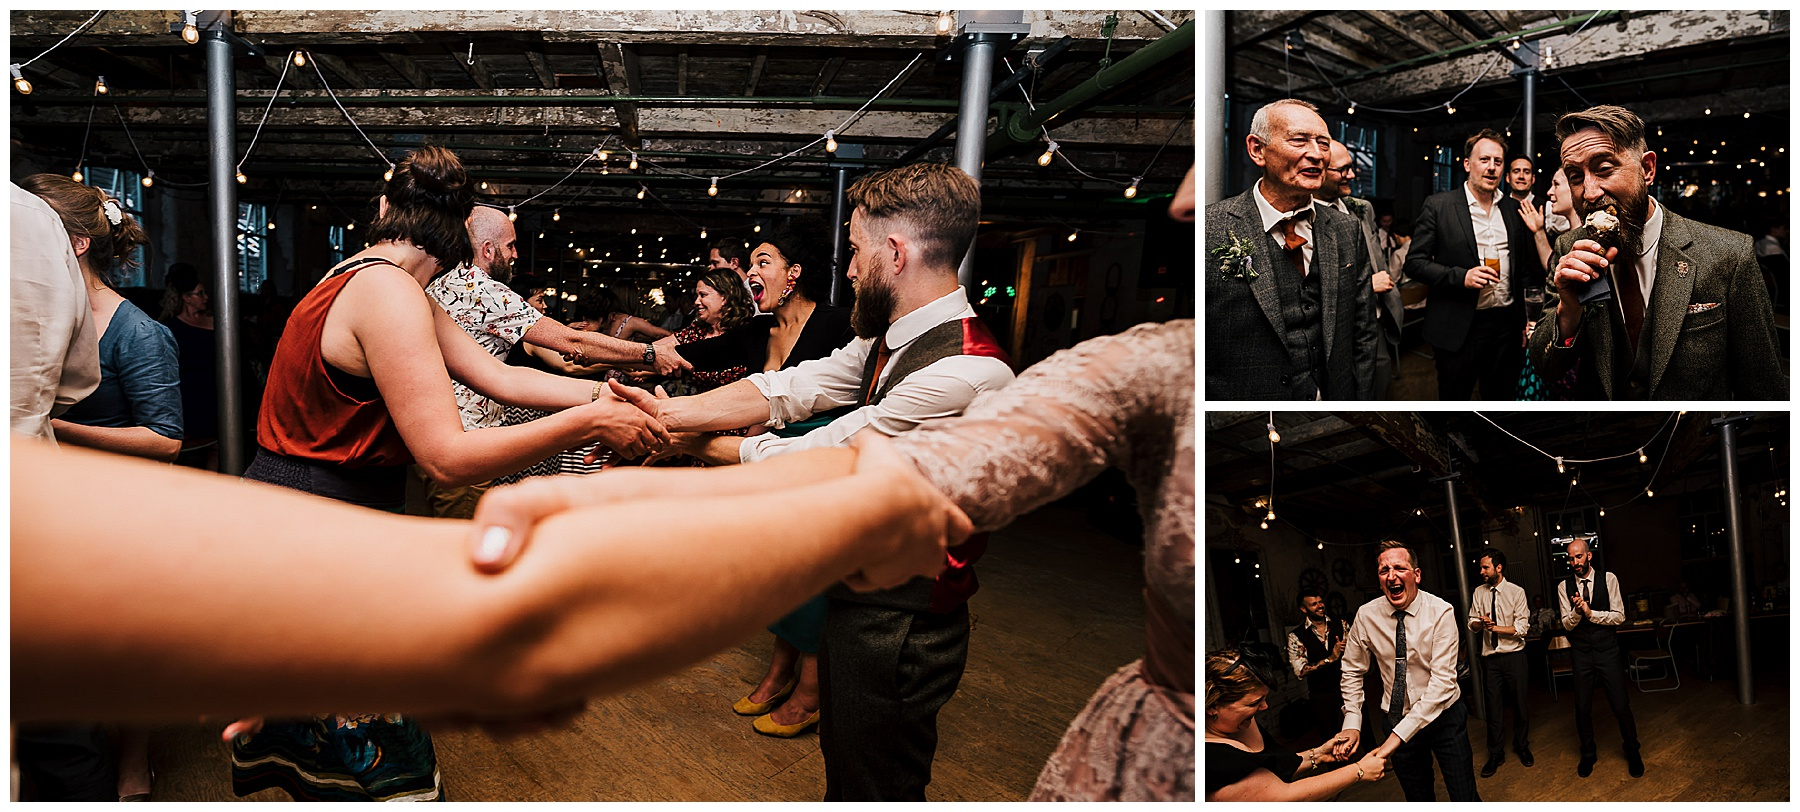 Holmes Mill – An Ultra Cool Vintage Wedding